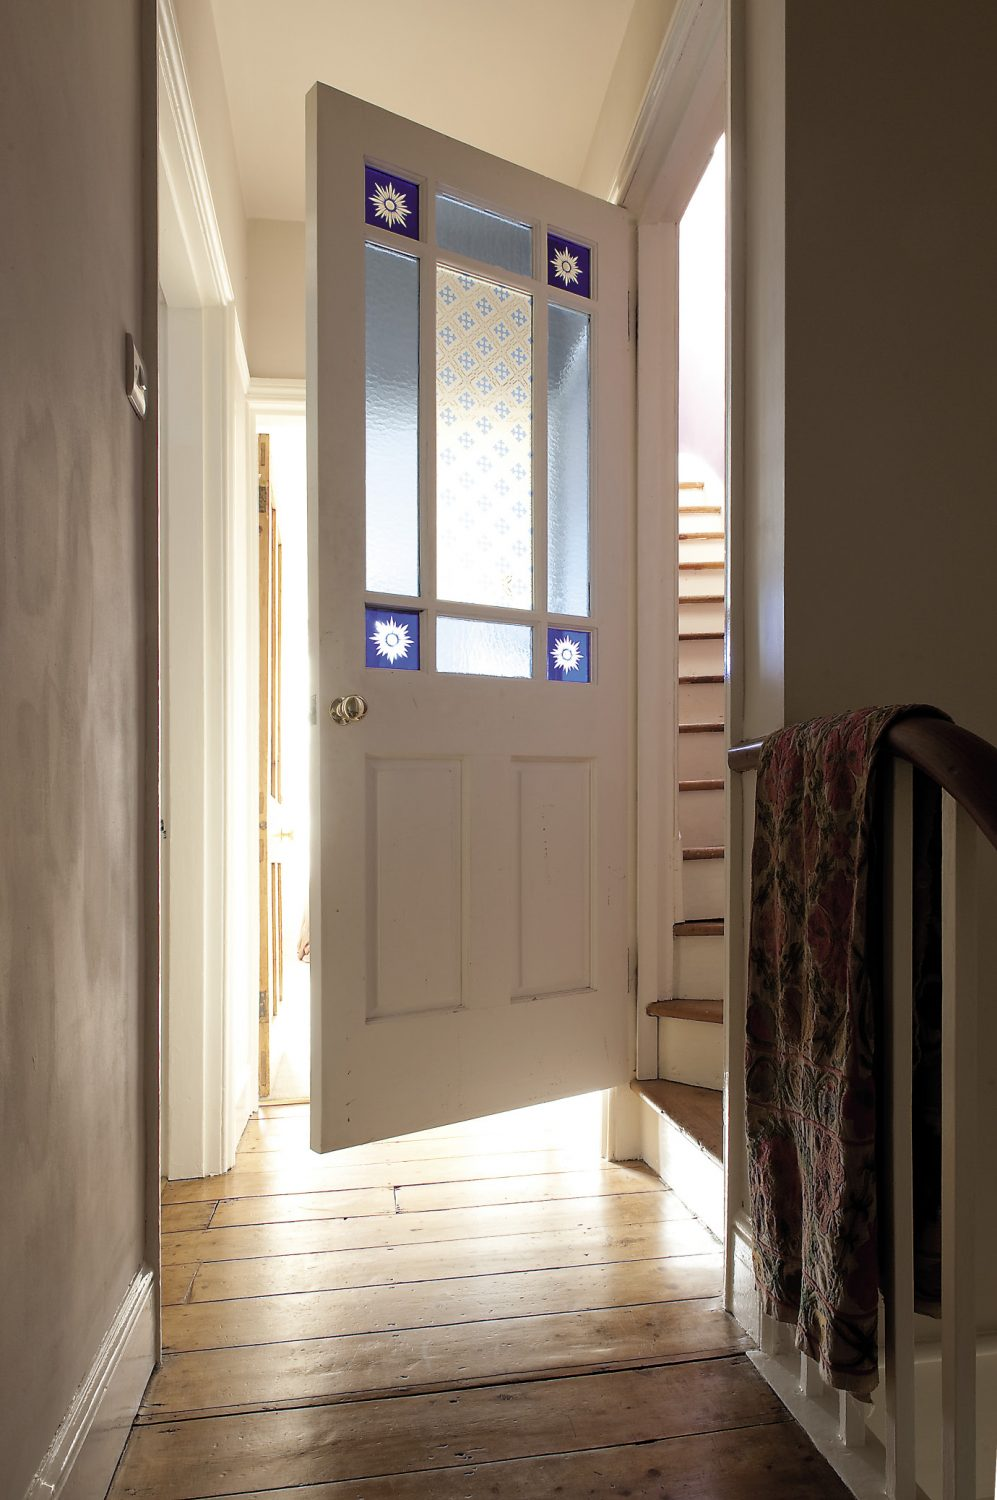 A wooden door with stained glass inserts leads to Bobby's room on the top floor